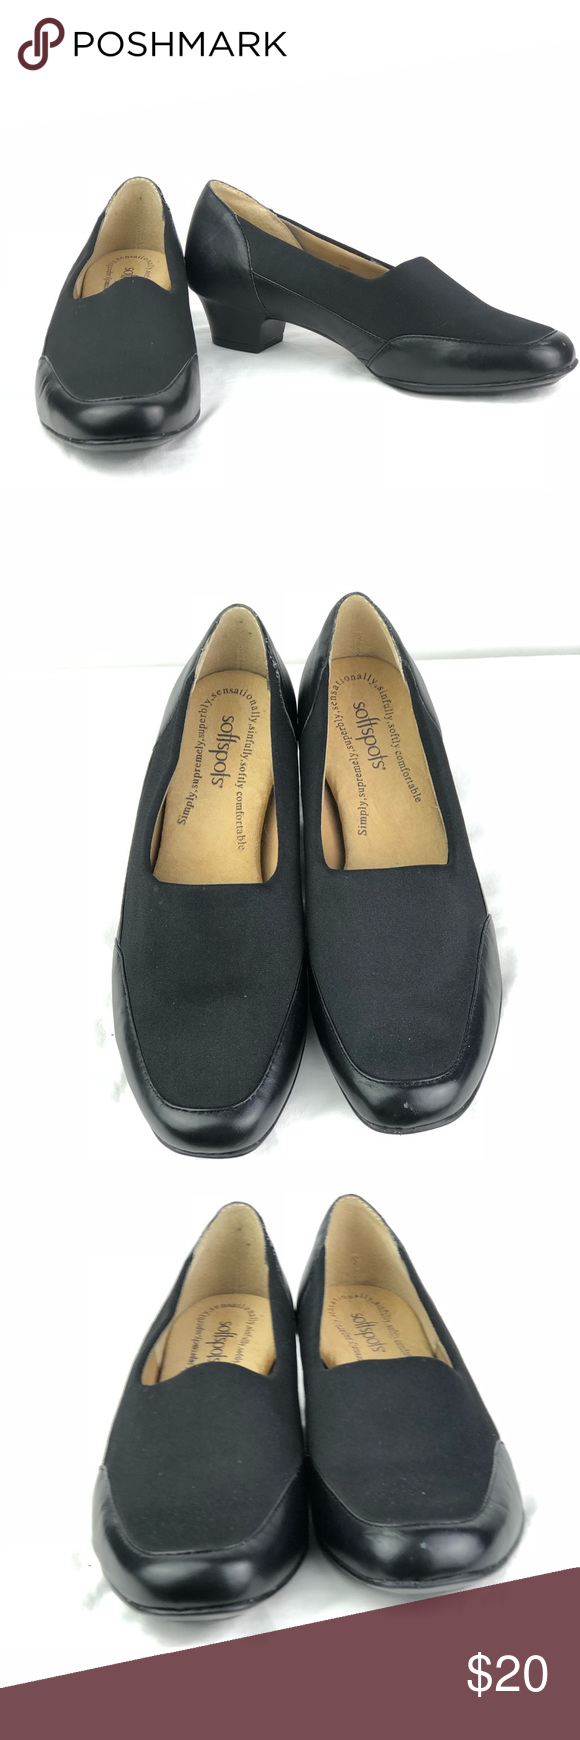 74a80b8ee4 Soft spots black pump size 7 Soft spots black pump size 7 Softspots Shoes  Flats   Loafers